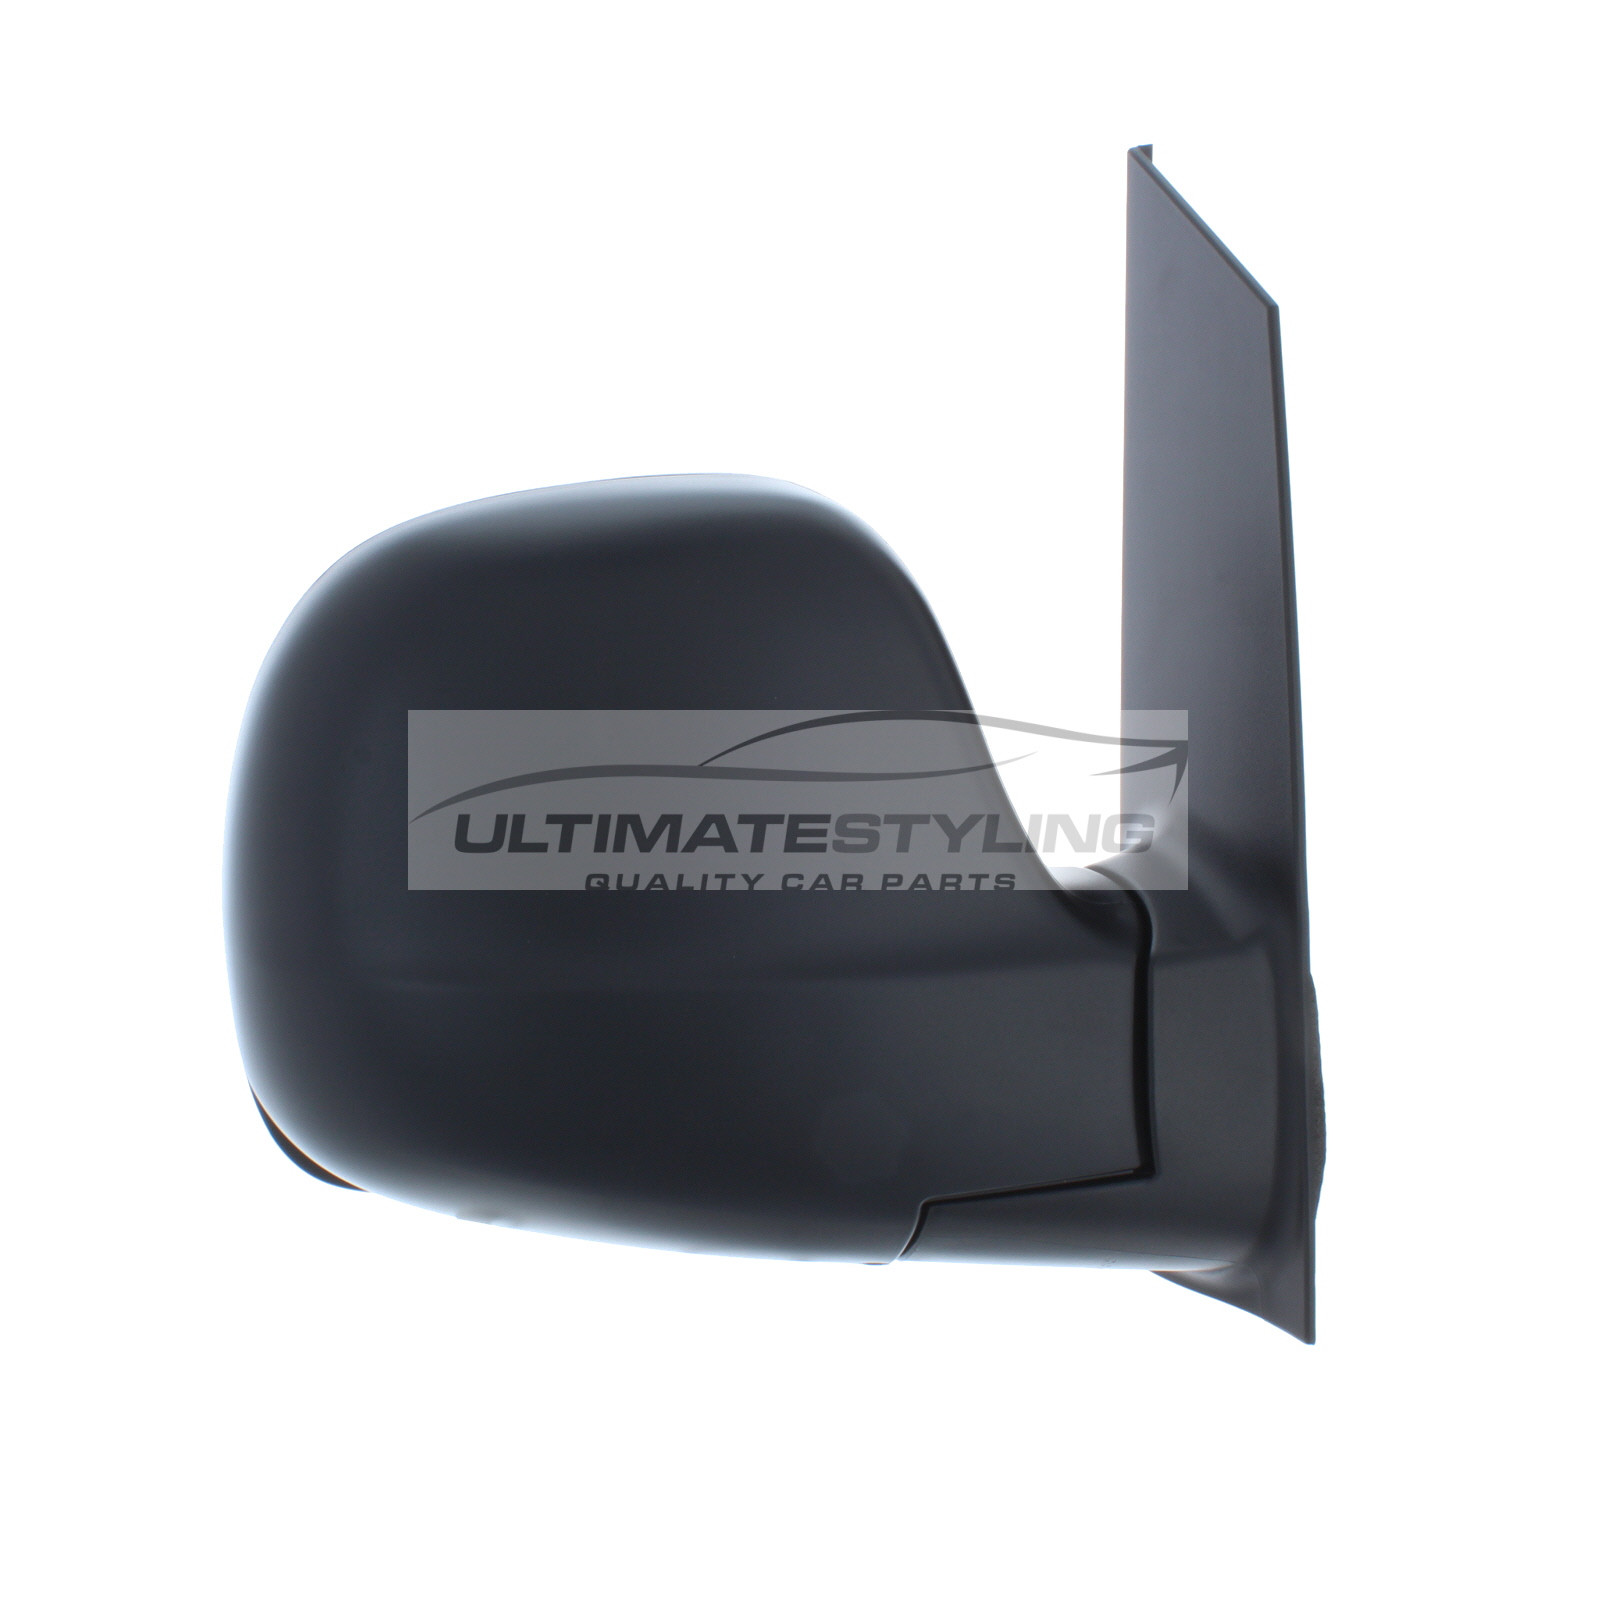 Left Hand Side LH Ultimate Styling Aftermarket Replacement Wing Mirror Cover Cap Colour Of Cover Black Textured For Passenger Side